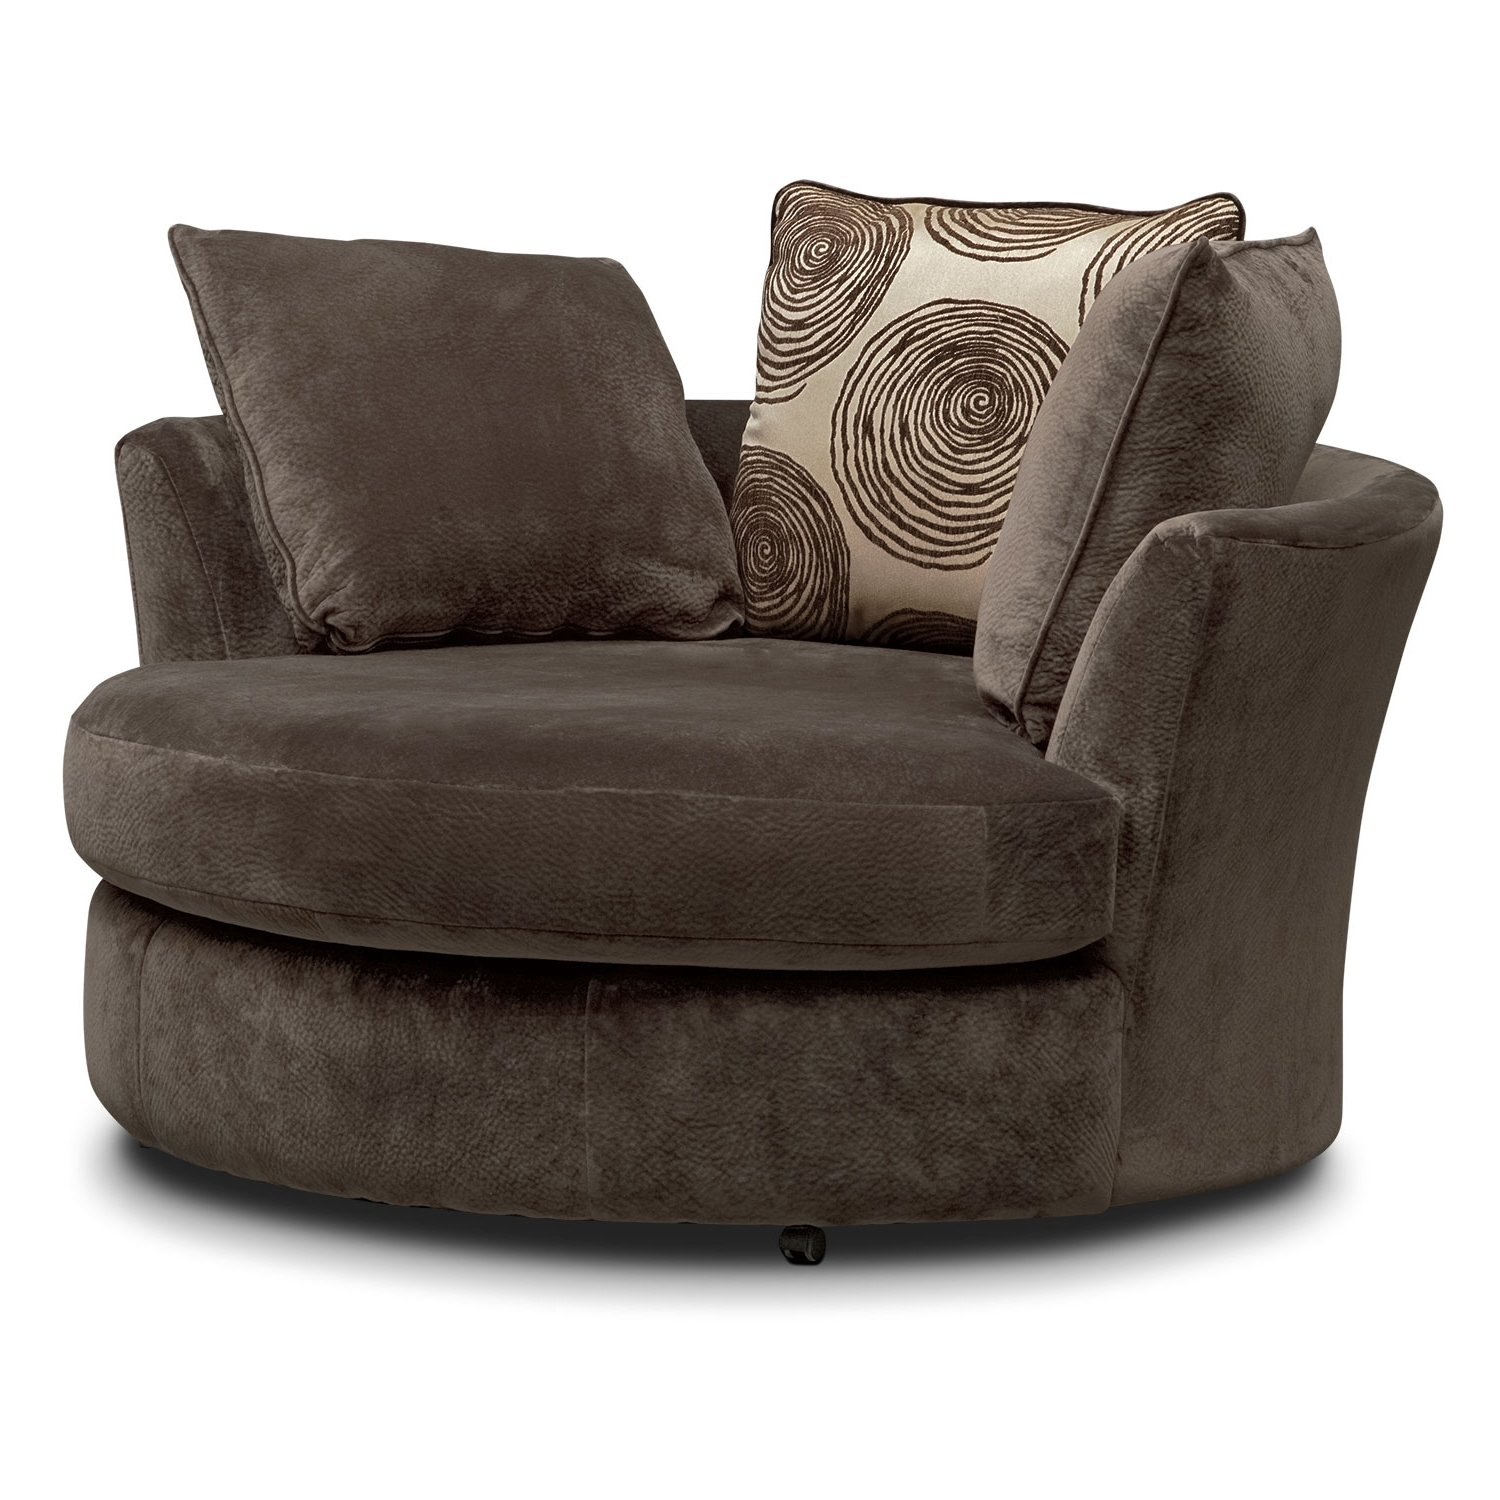 Most Popular Swivel Sofa Chairs Within Fancy Swivel Sofa Chair 41 With Additional Sofa Table Ideas With (View 2 of 20)